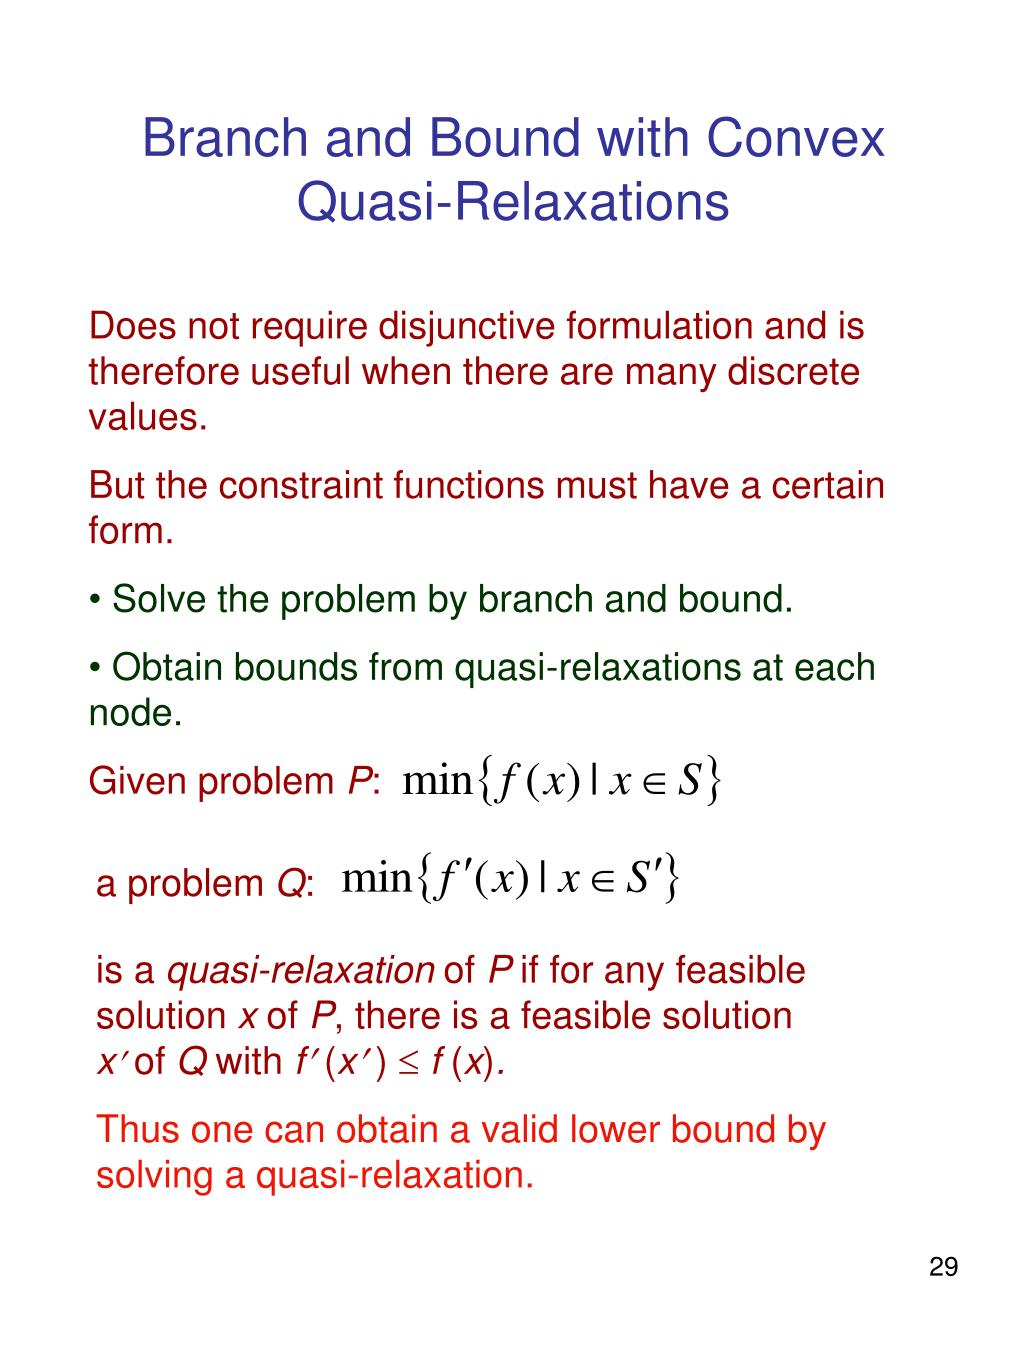 Branch and Bound with Convex Quasi-Relaxations